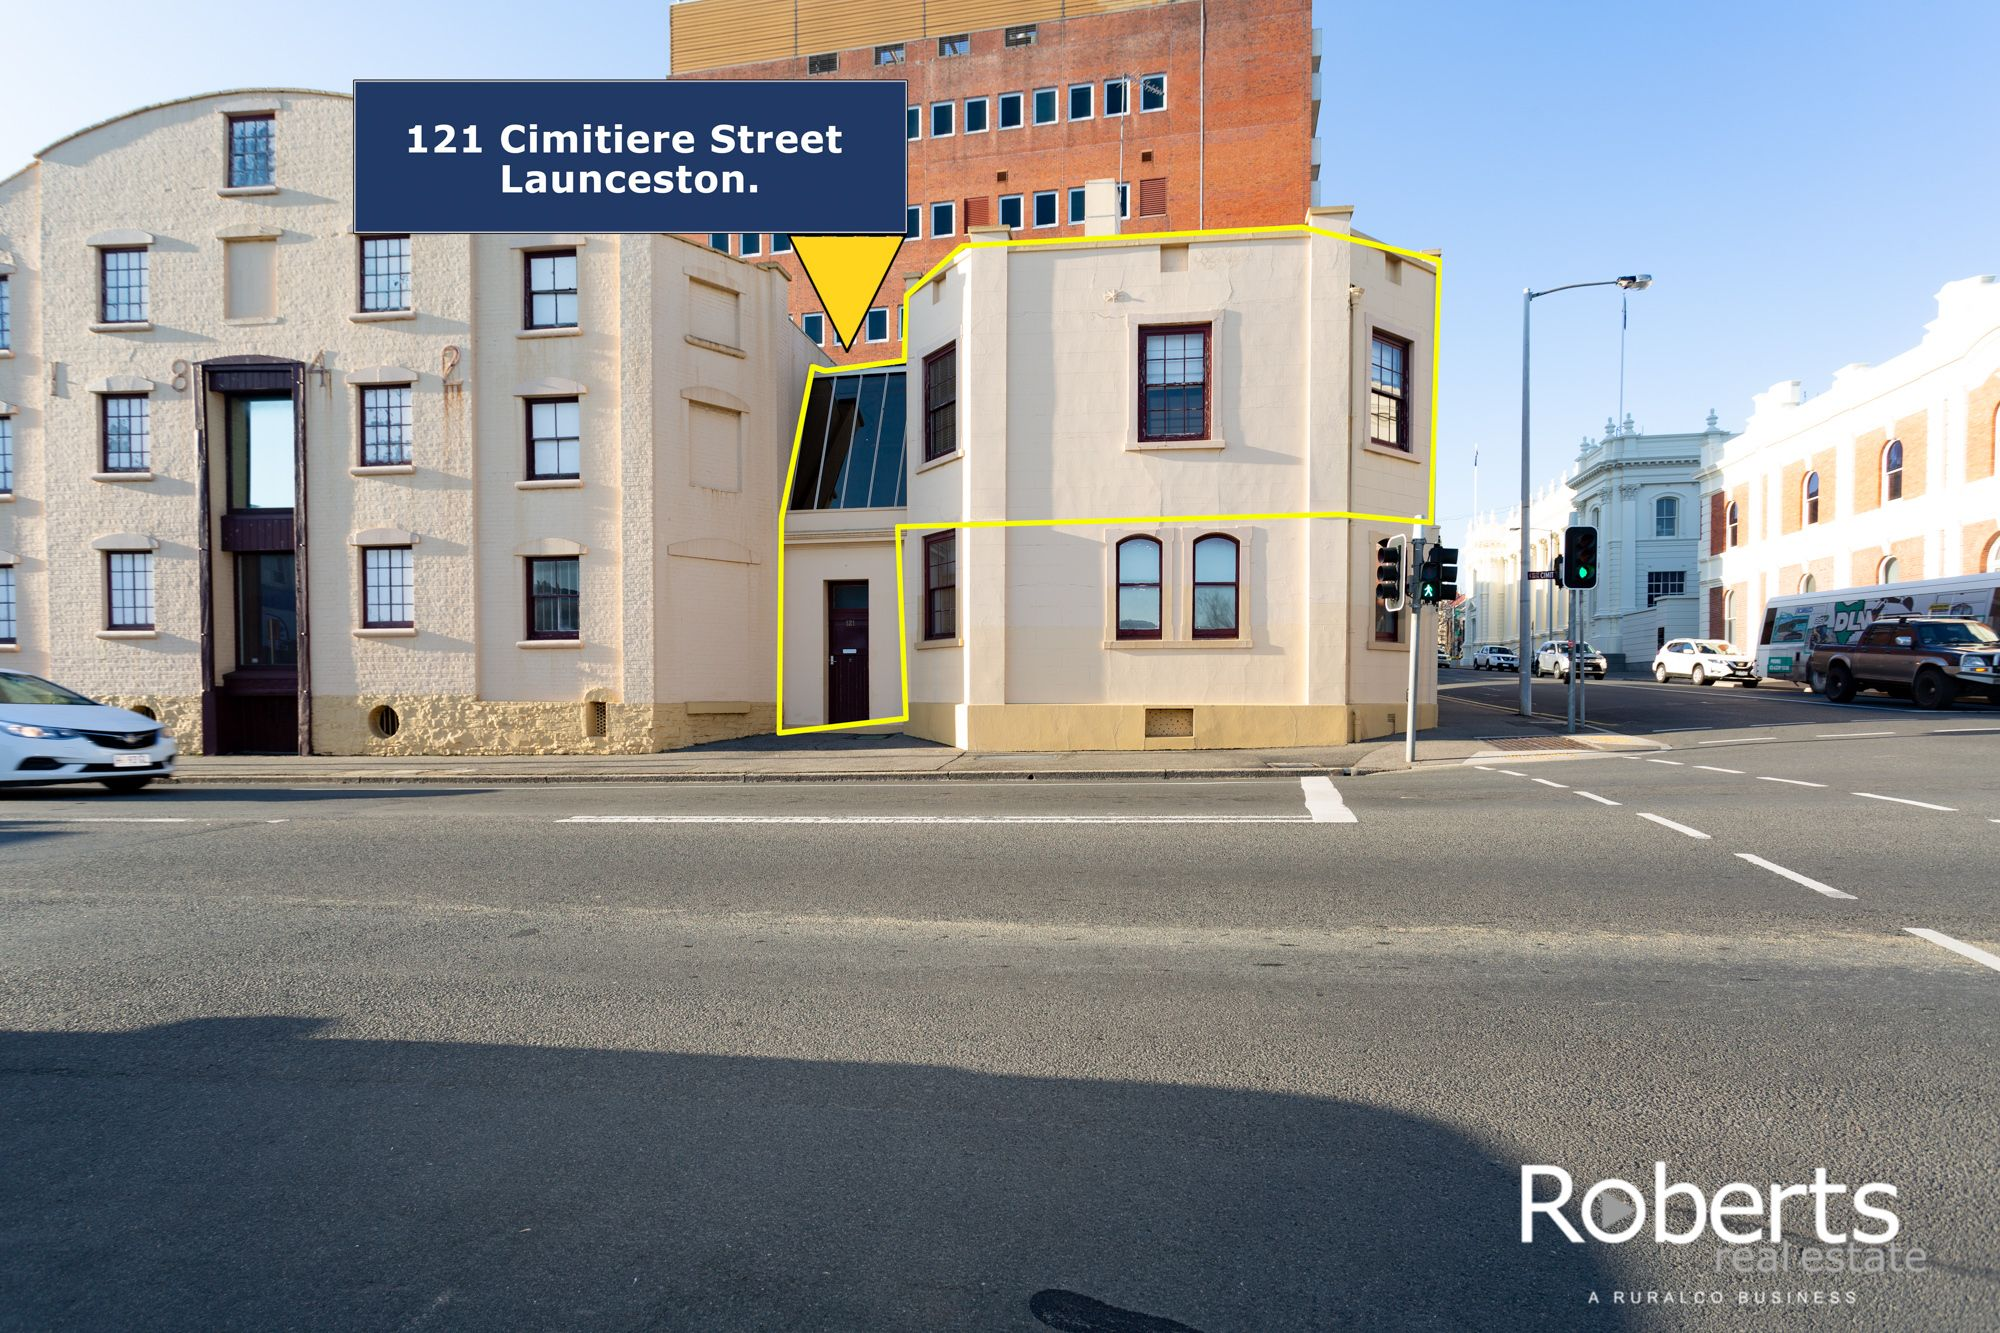 121 Cimitiere Street, Launceston